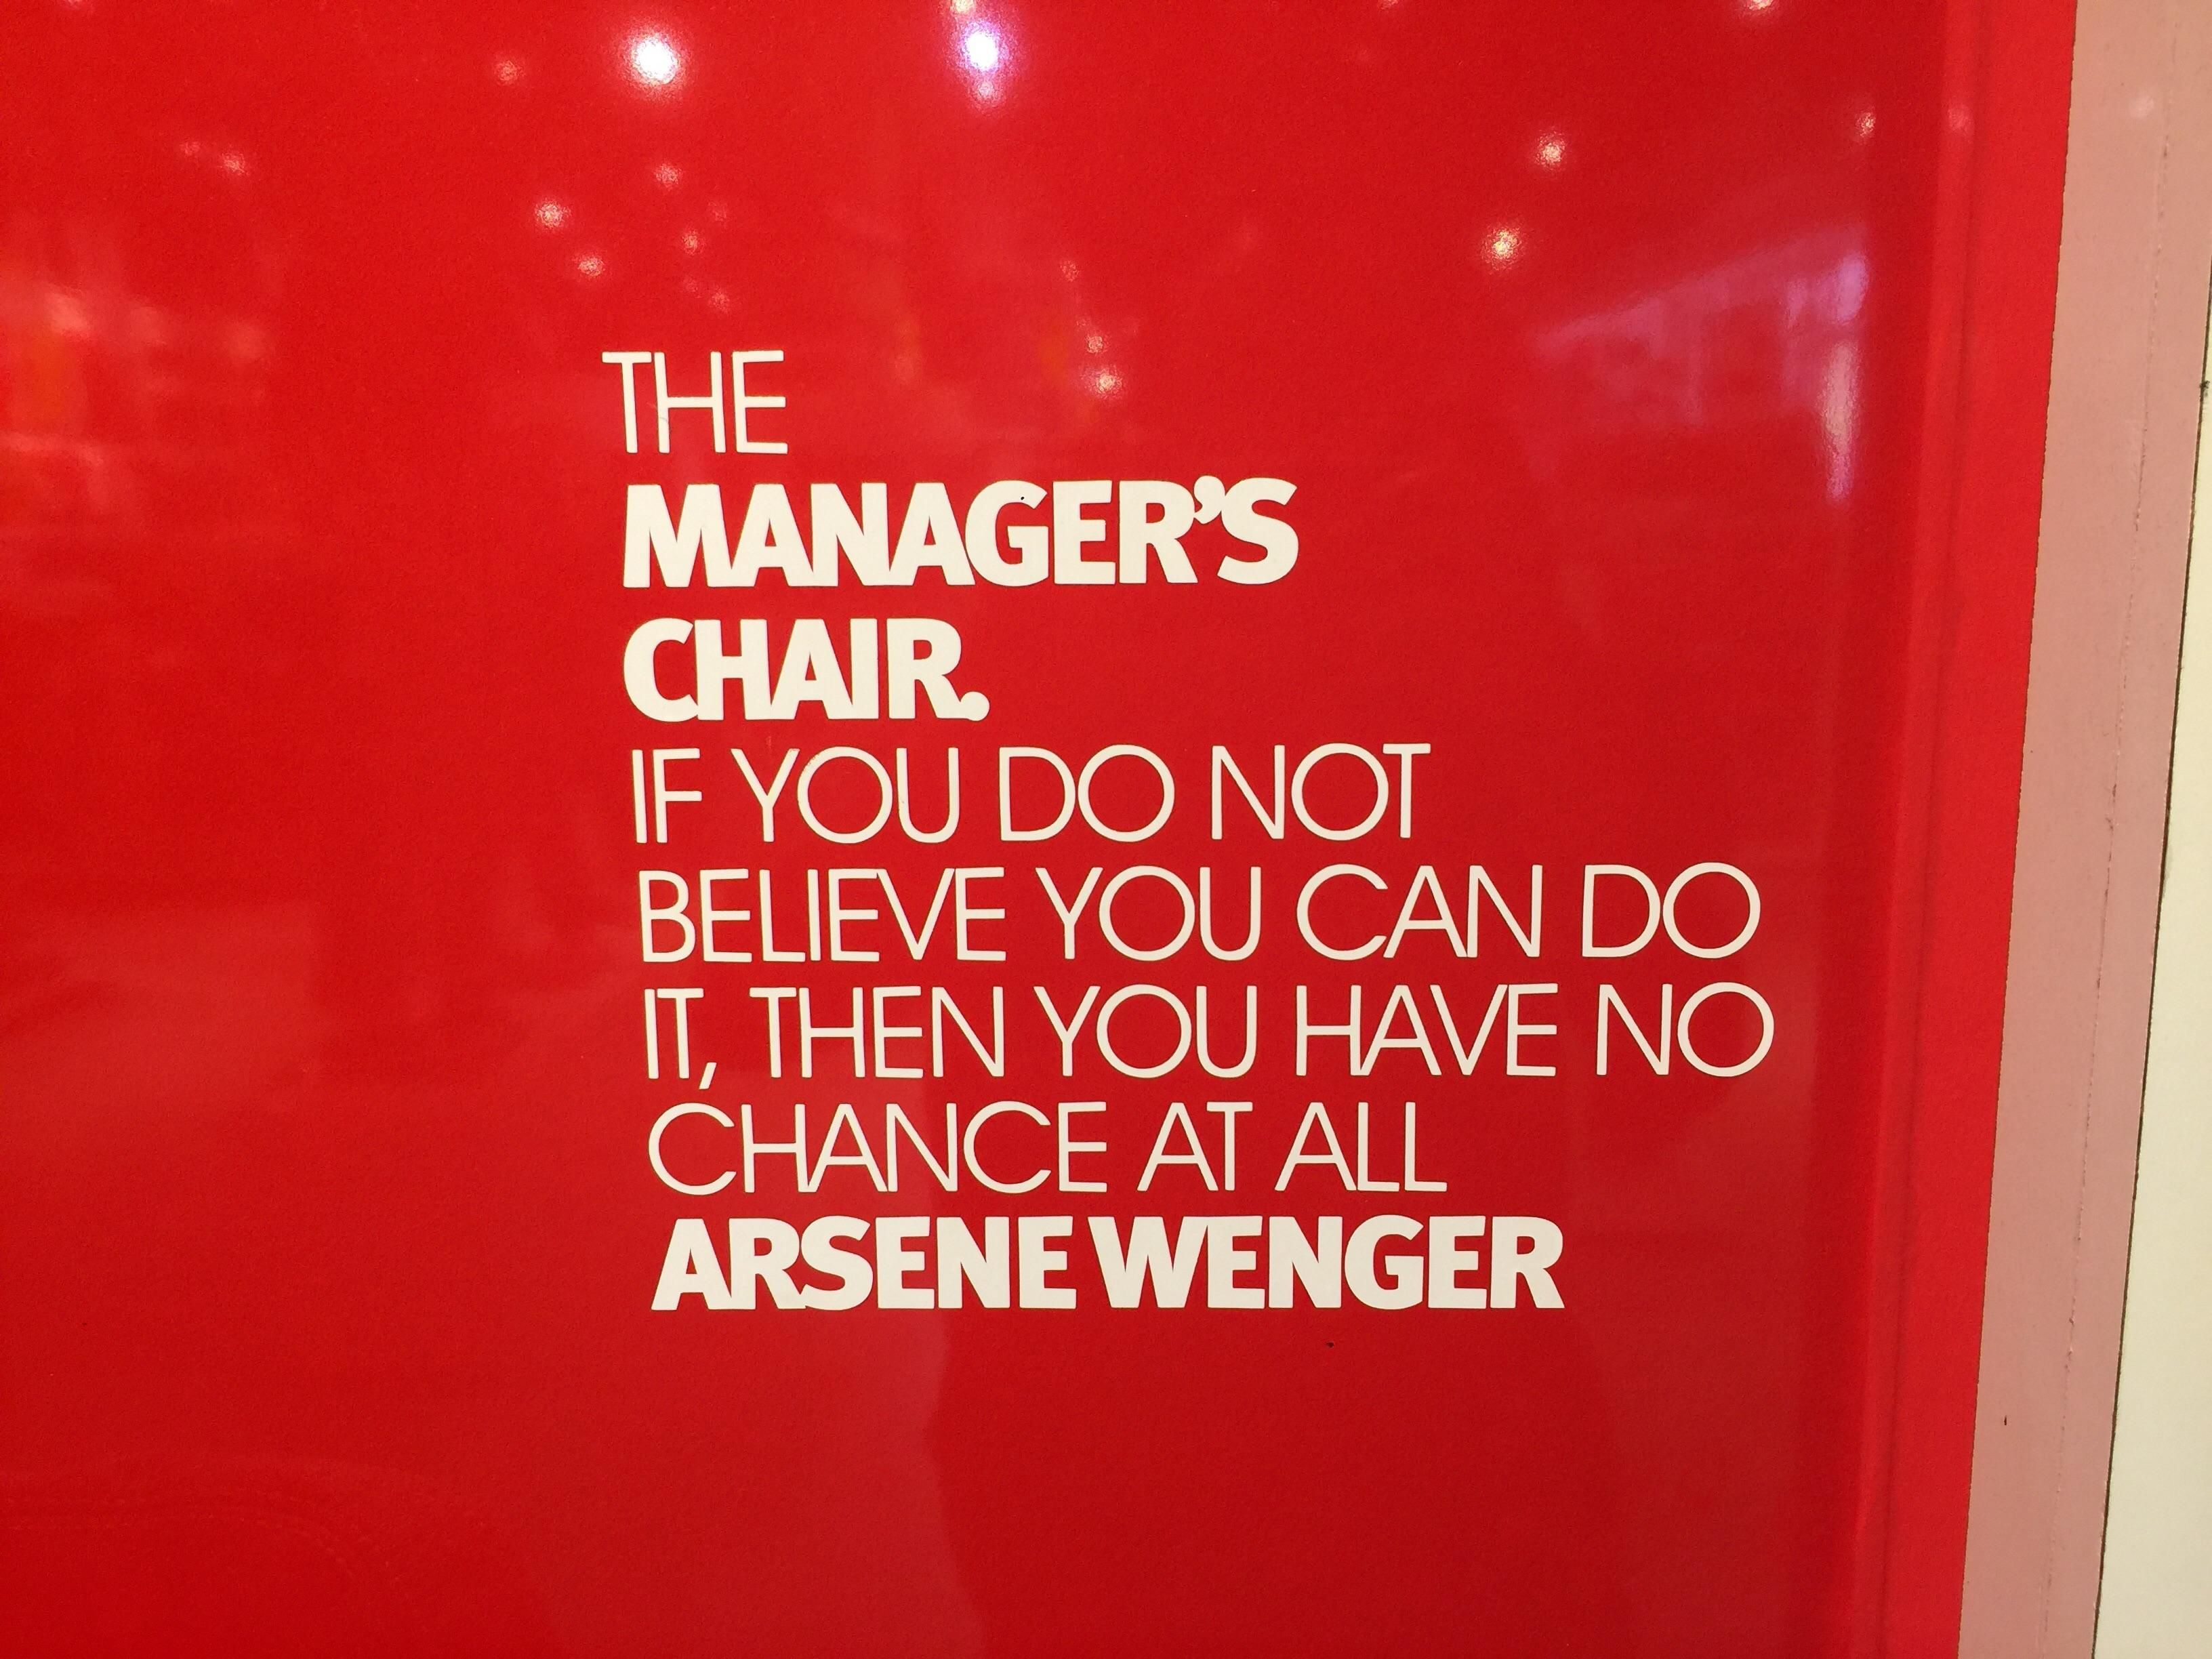 [image] saw this at the Emirates stadium